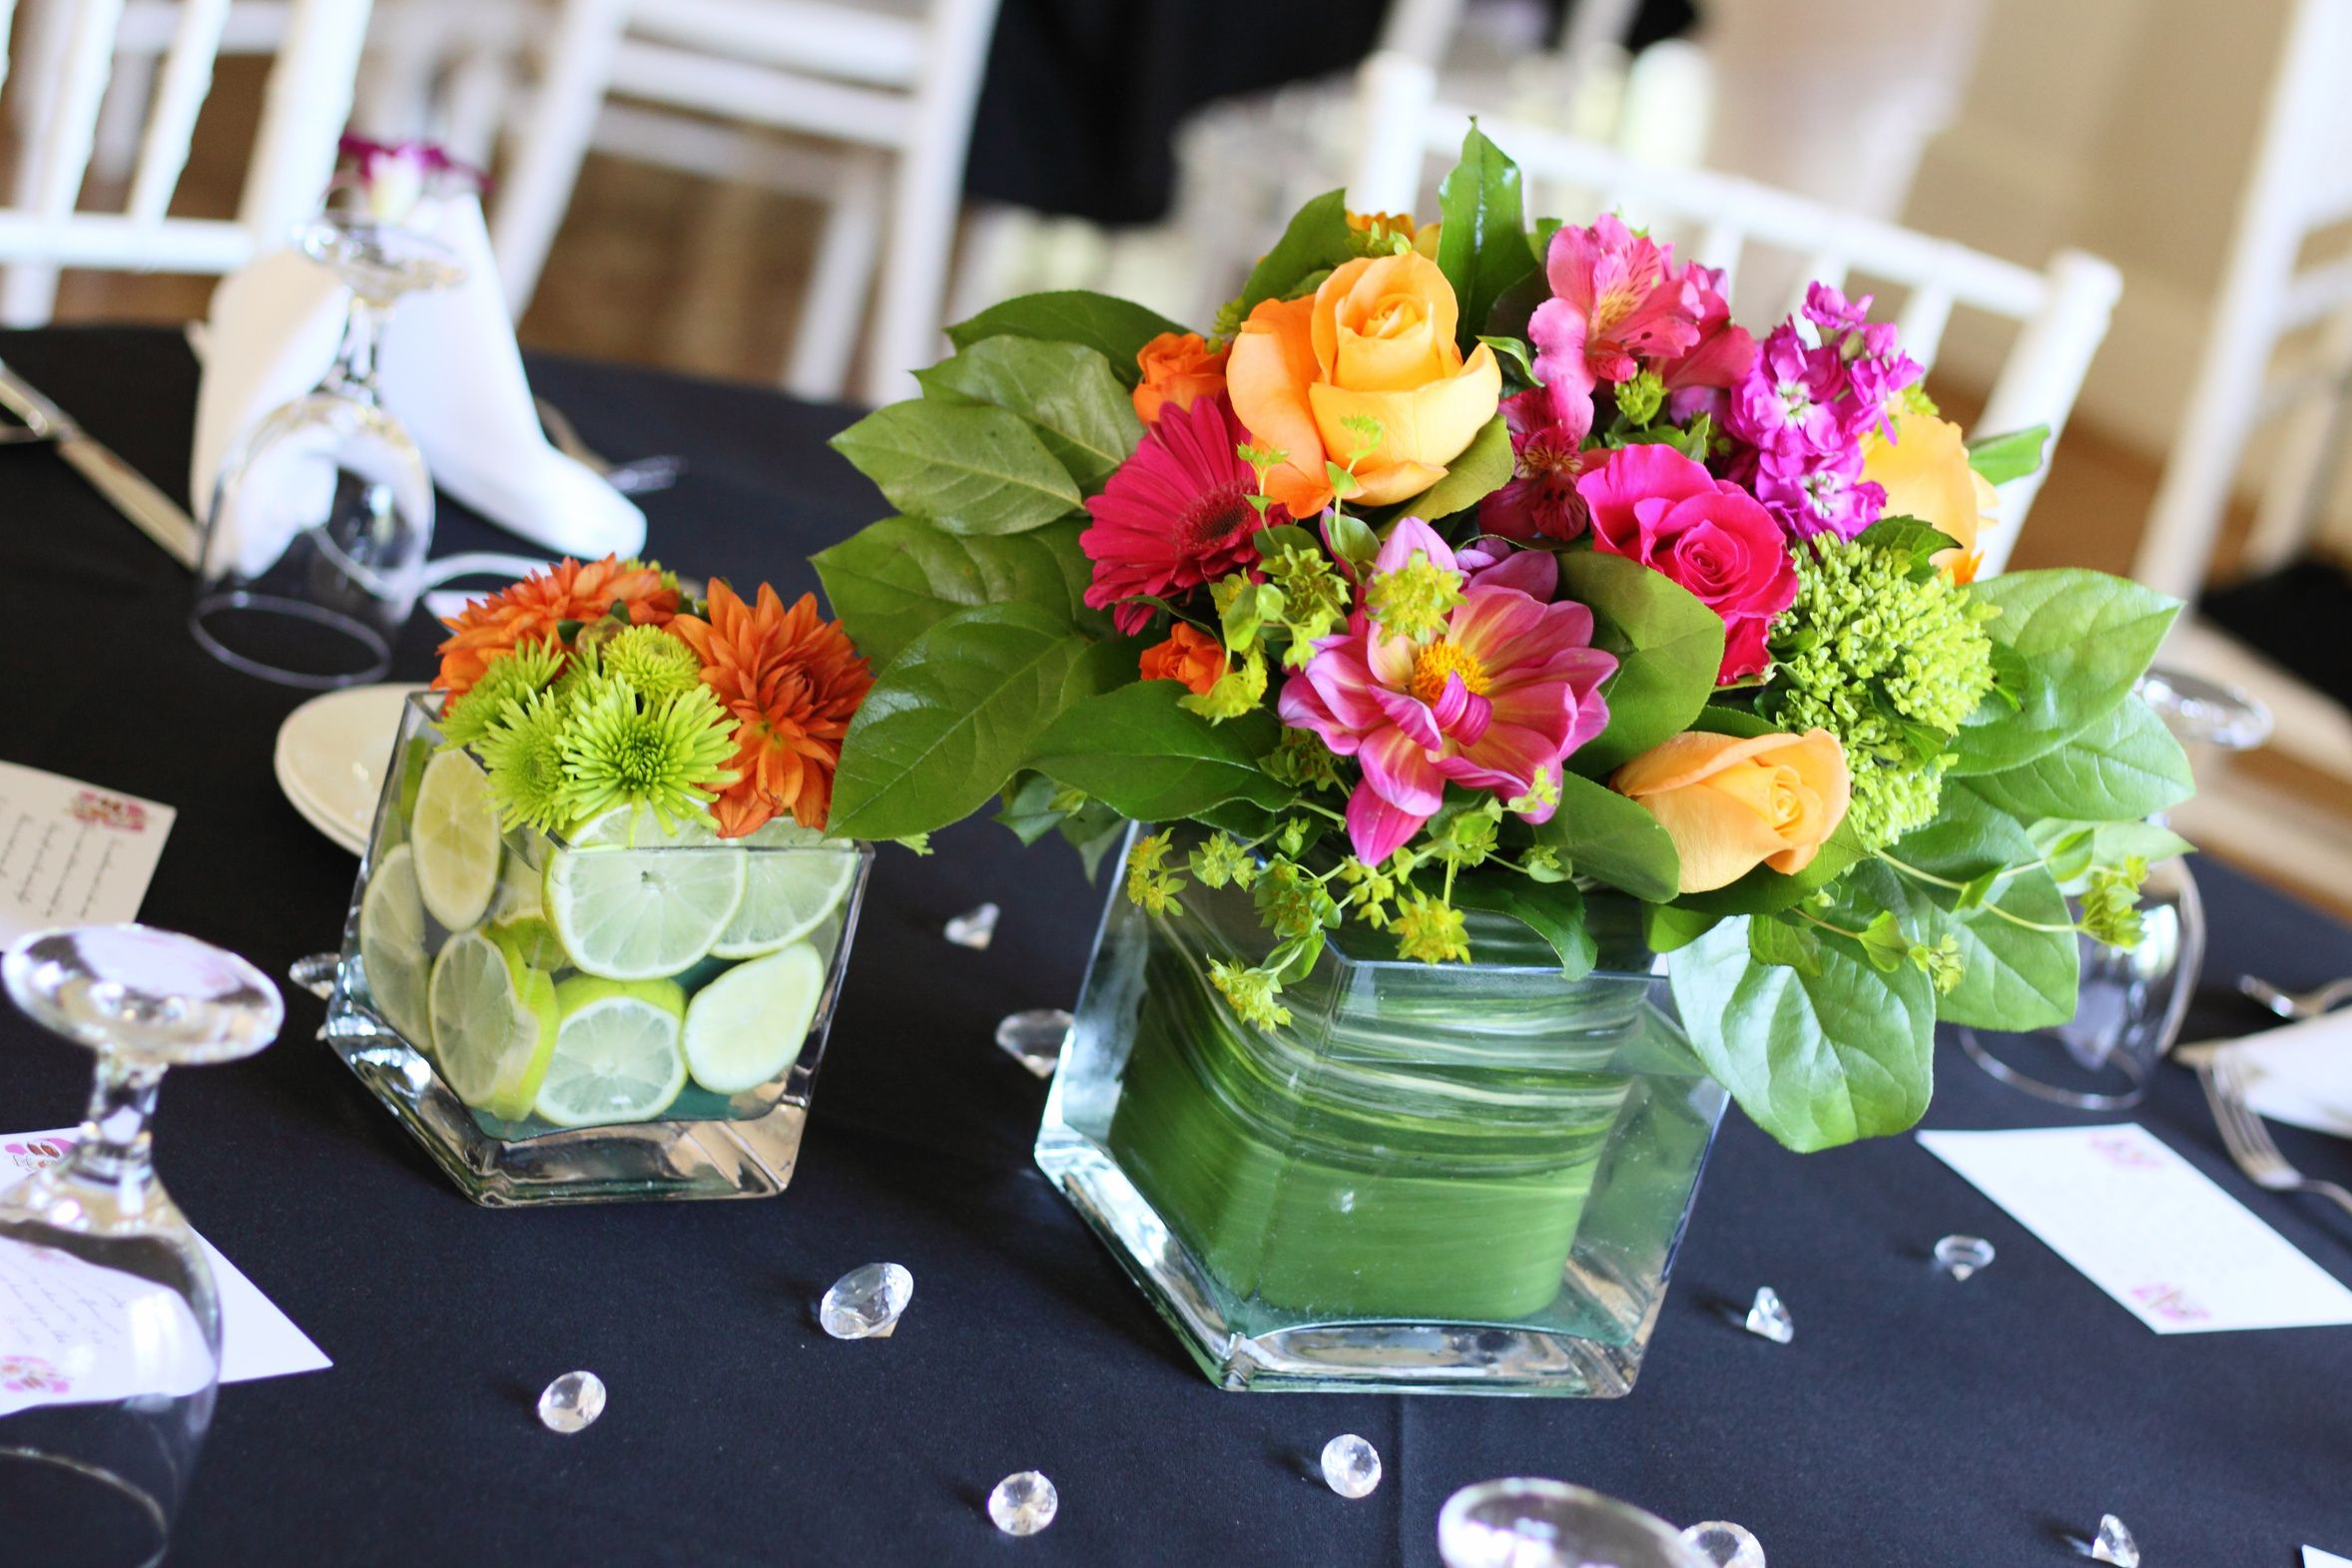 More hydrangea less leaf for summer centerpiece dream wedding square glass vases have features that are helpful for many wedding centerpiece ideas diy wedding flowers and vases just got easier with these ideas junglespirit Images